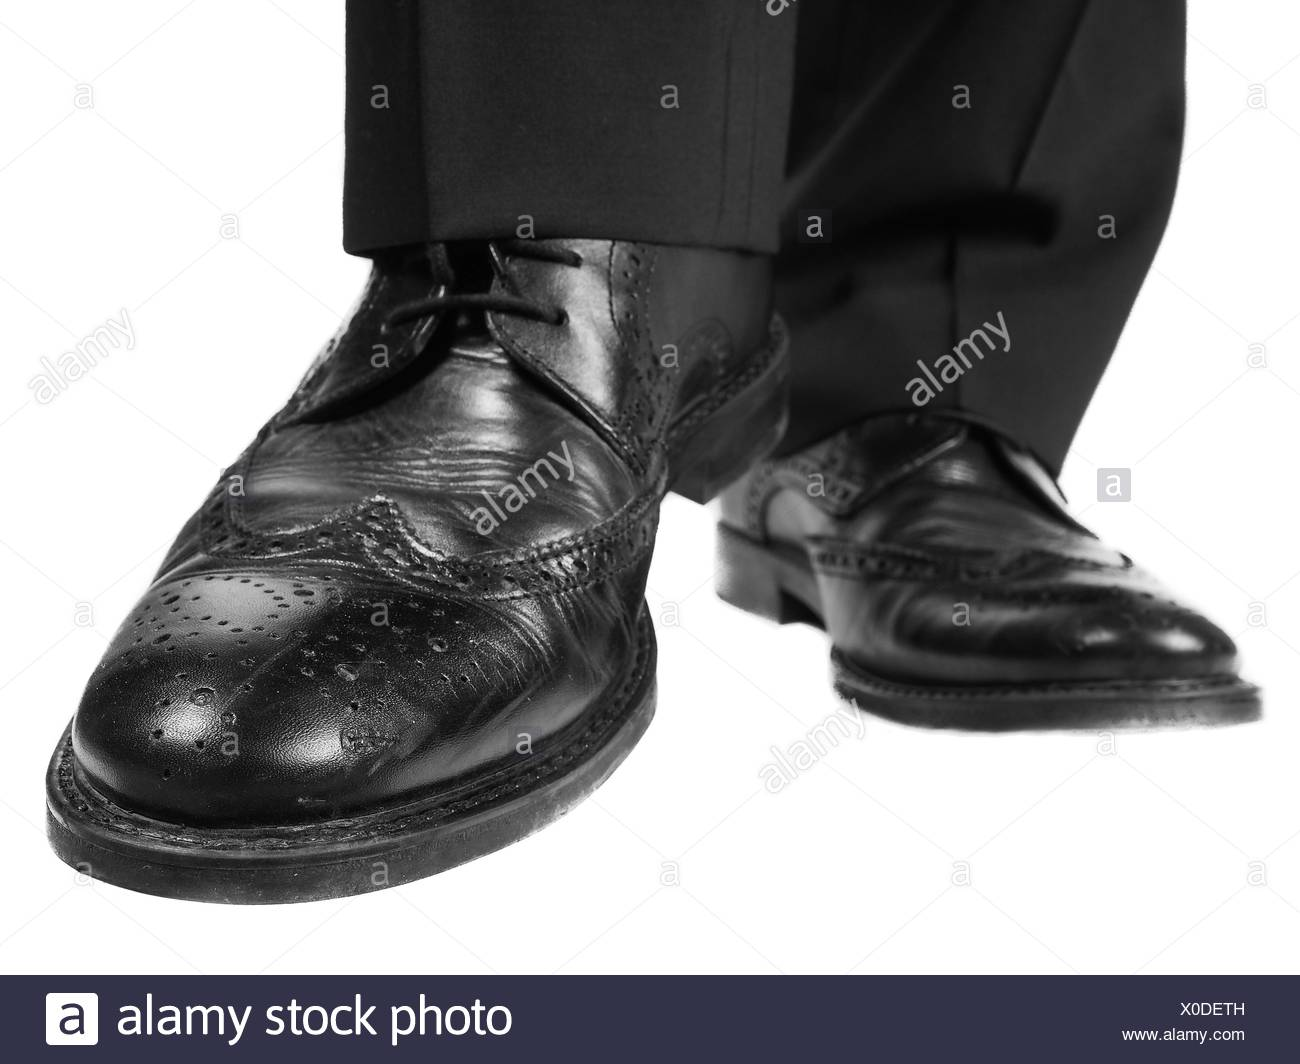 Black suit, black leather shoes approaching - Stock Image